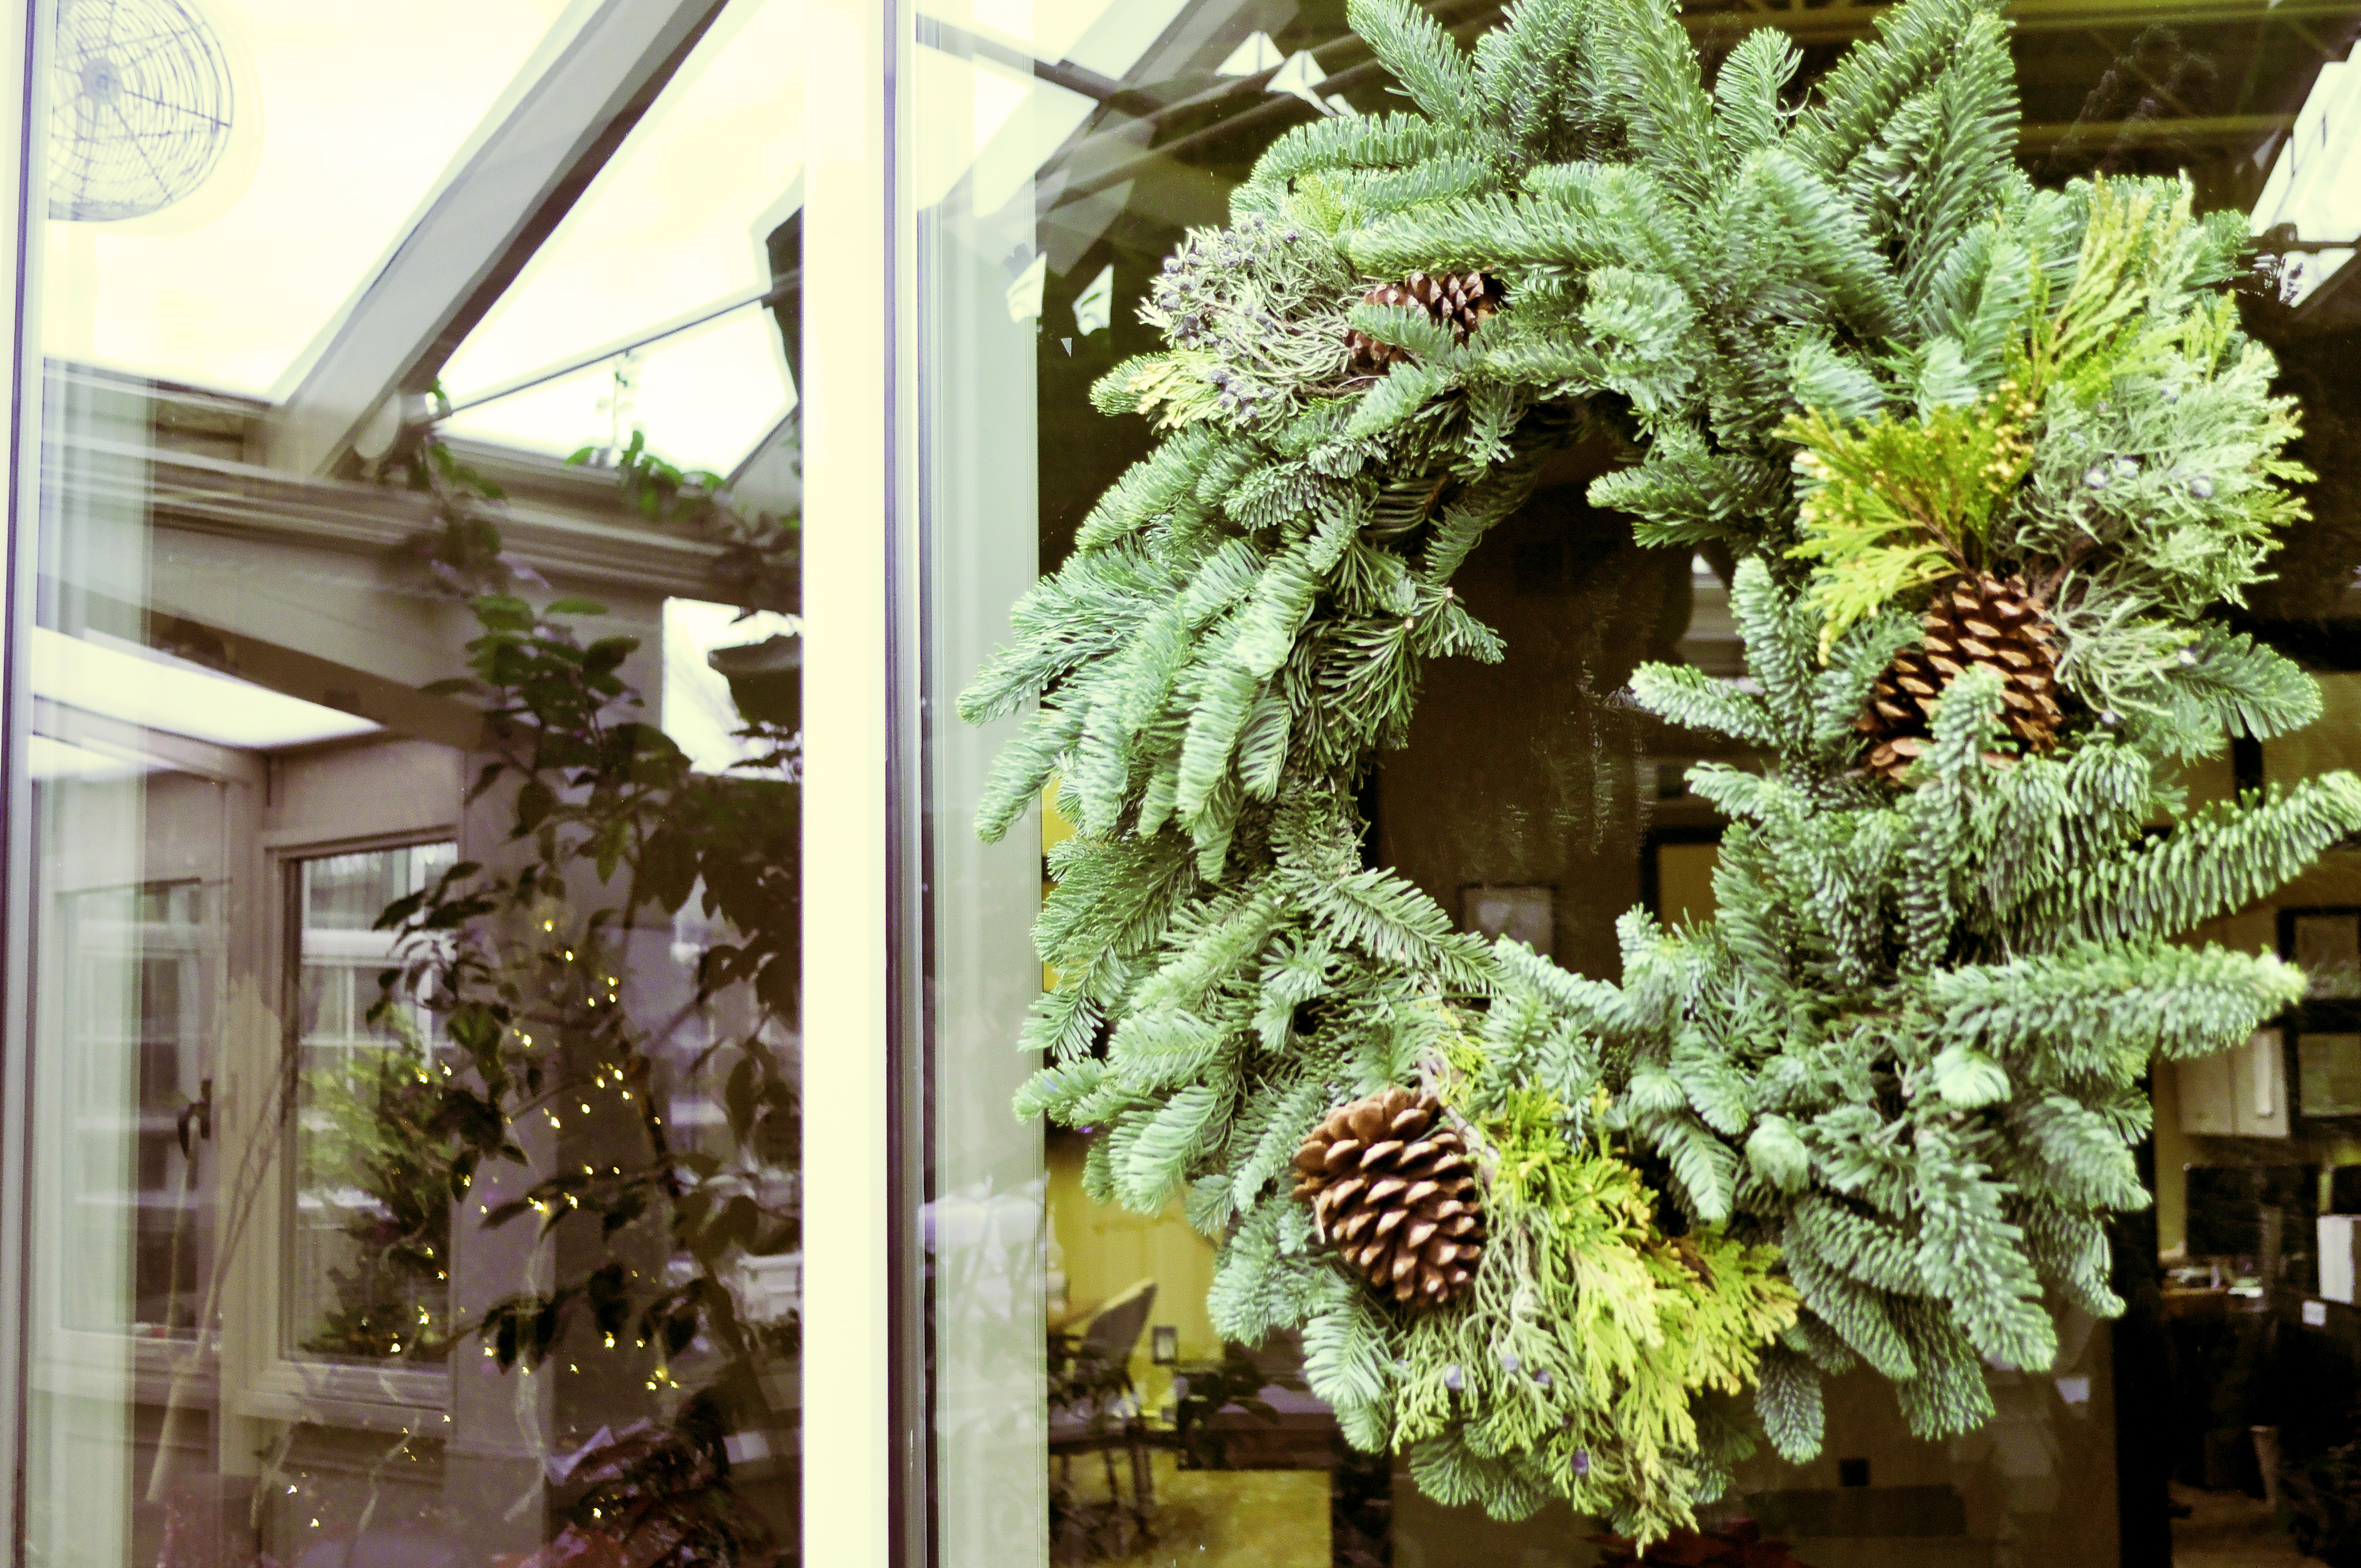 How to grow your own wreaths